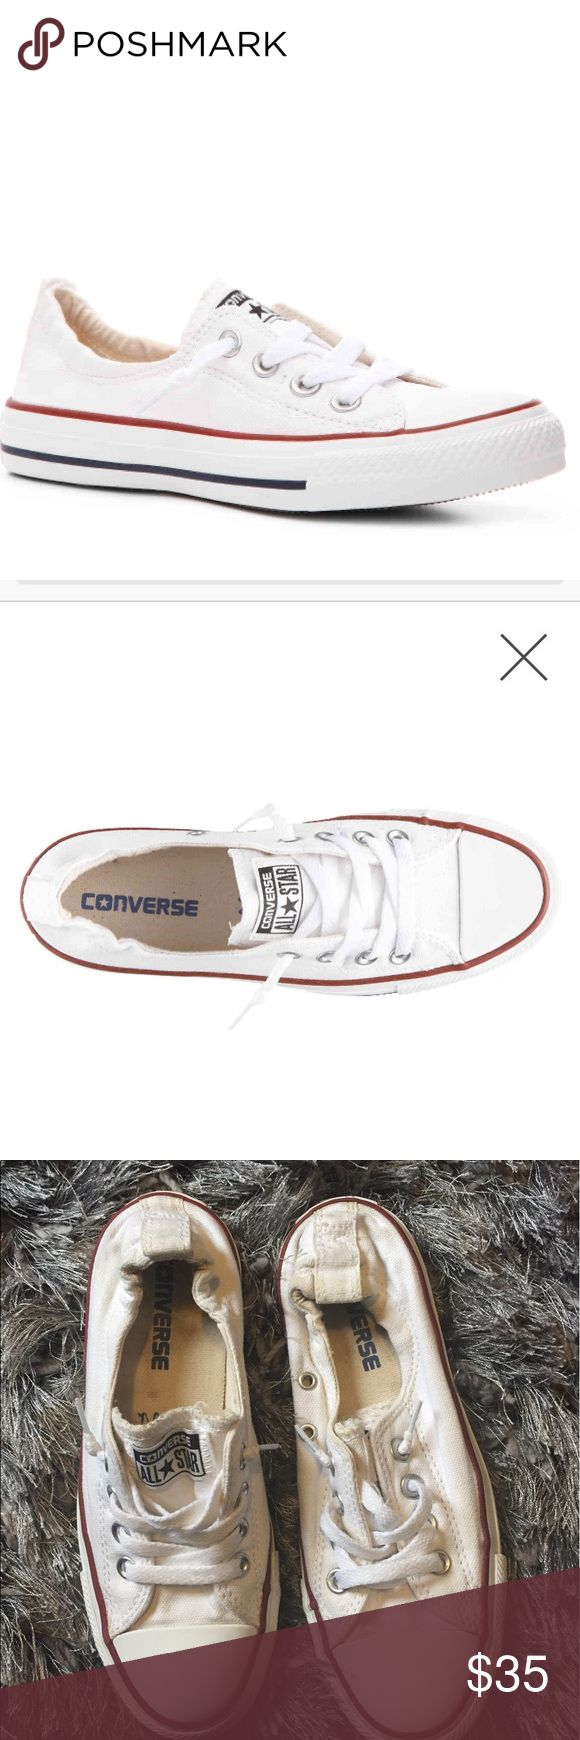 White Converse White chuck Taylor converse, like new condition, only have been worn a handful of times, very clean, the only place able to see wear is the heel inside where it's a bit dirty but can he taken out and cleaned, size 6, this is the authentic brand Converse Shoes Athletic Shoes